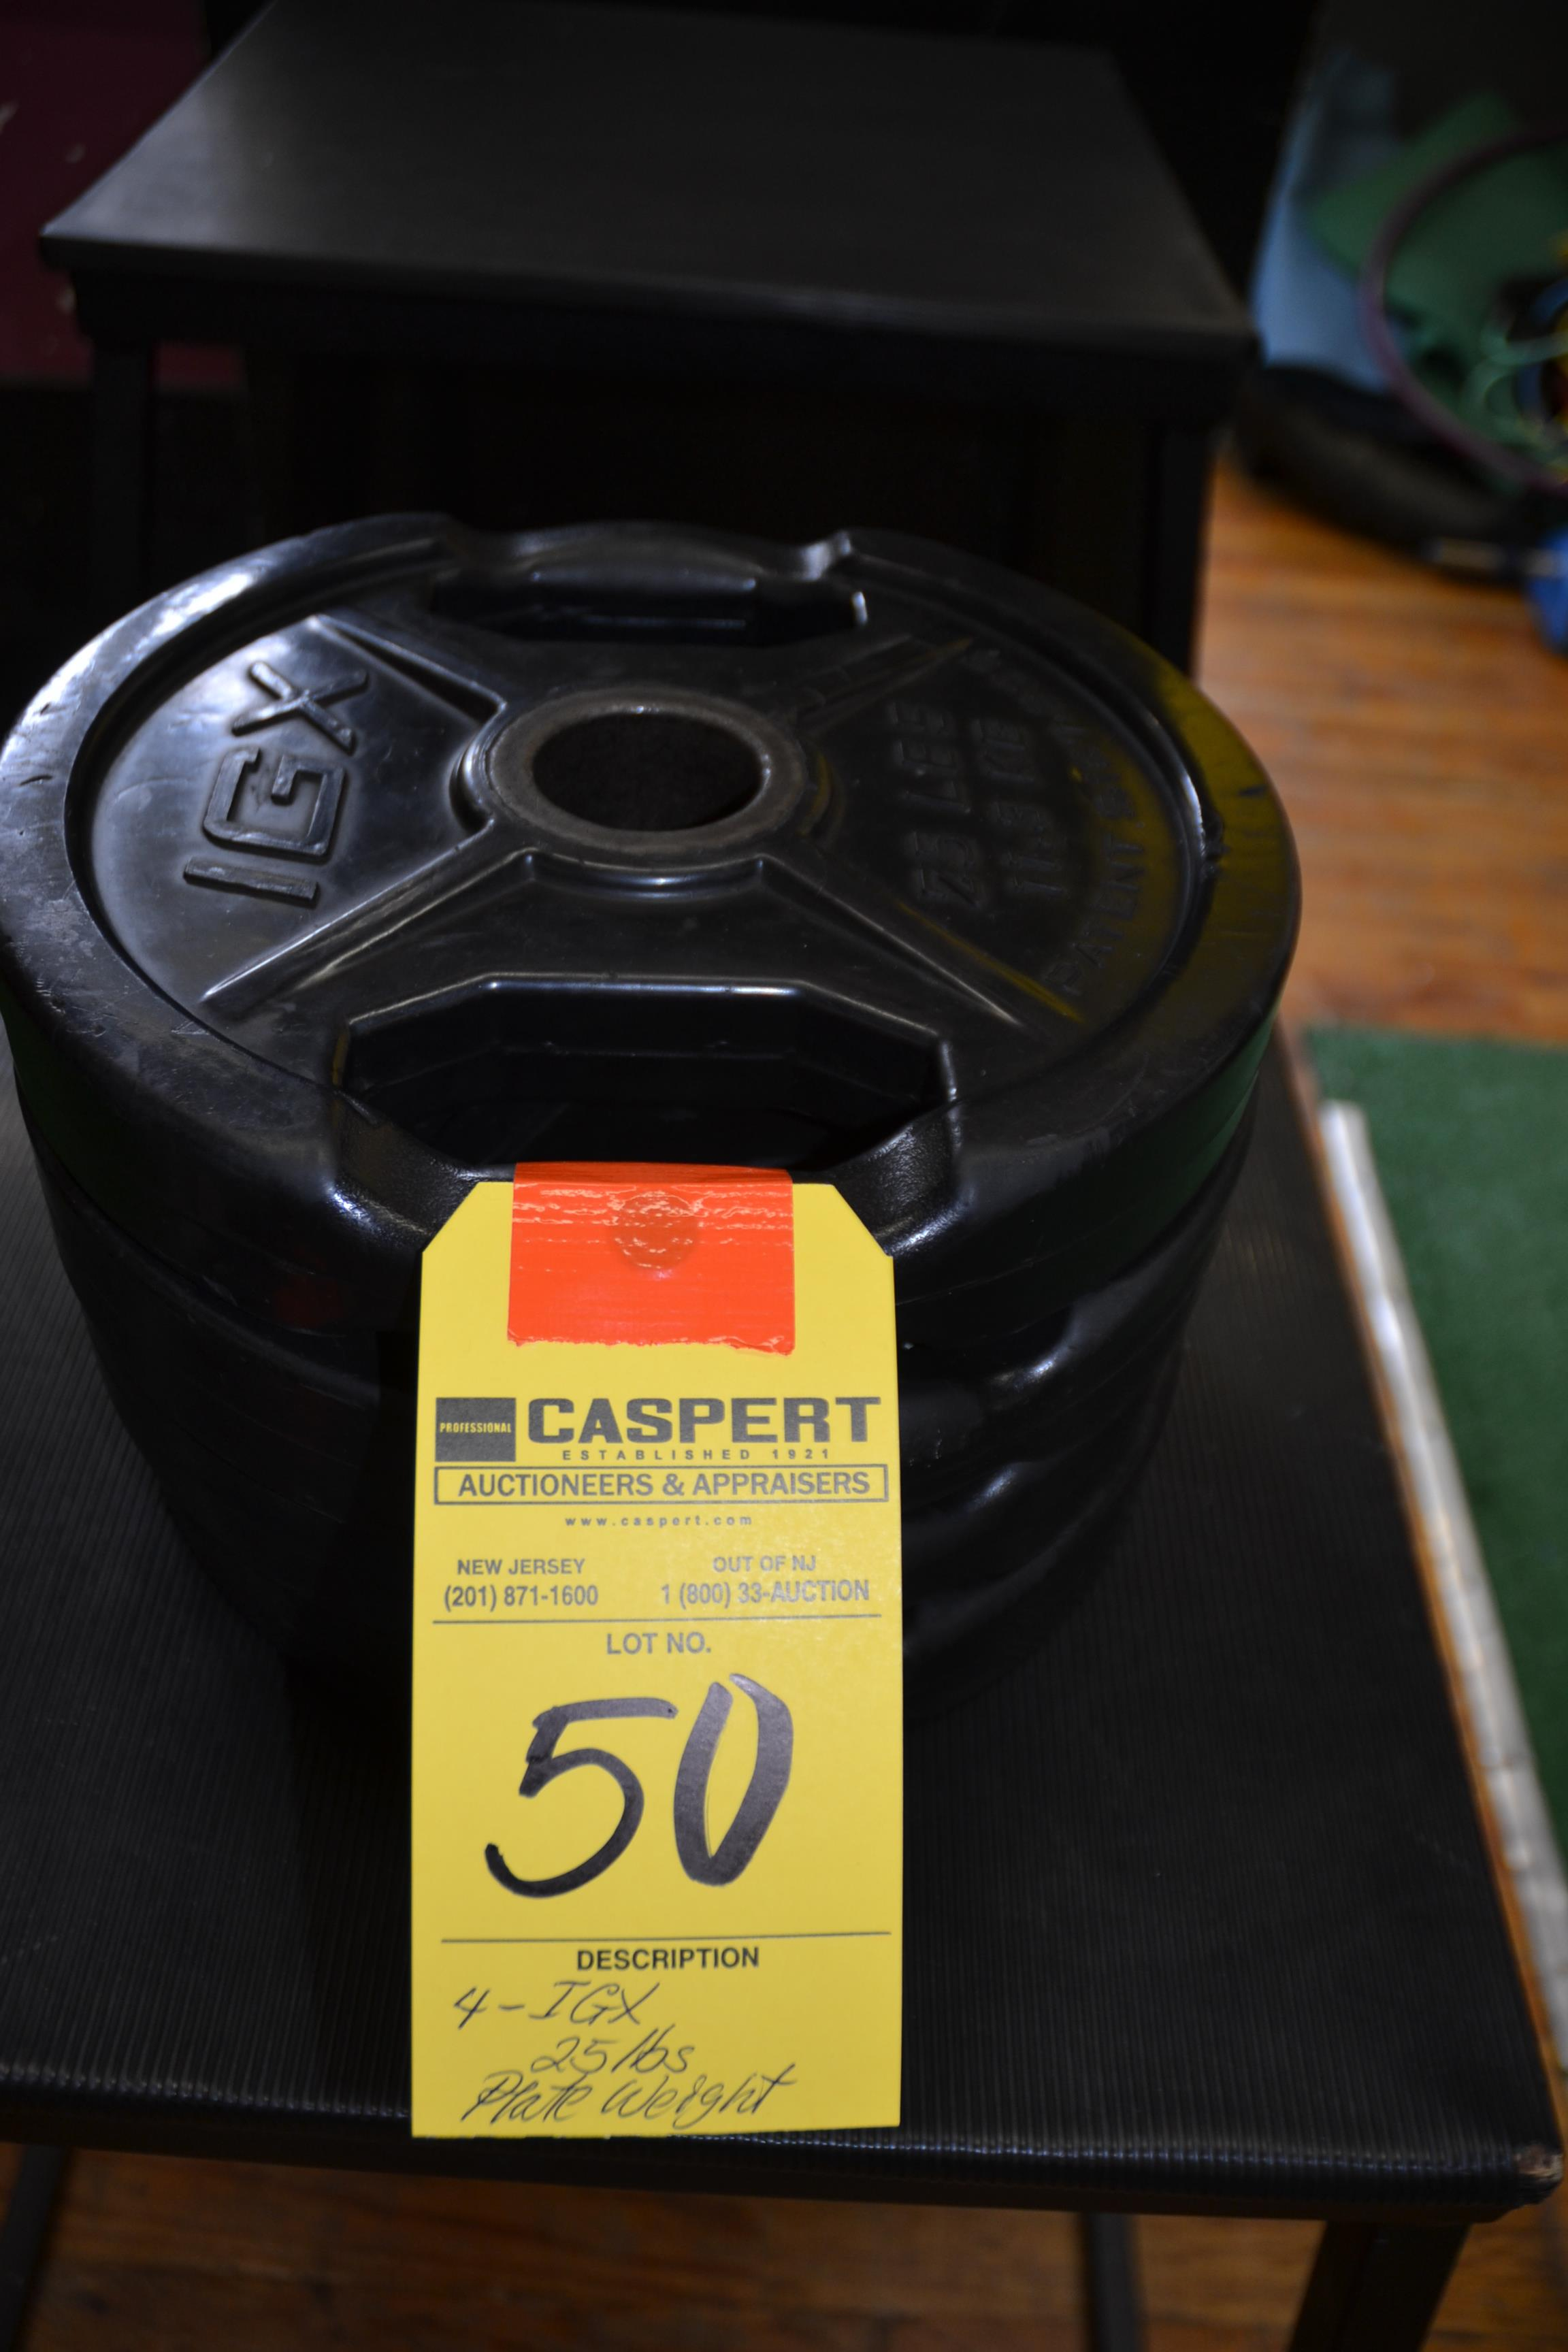 Lot 50 - IGX 25 LB. PLATE WEIGHTS